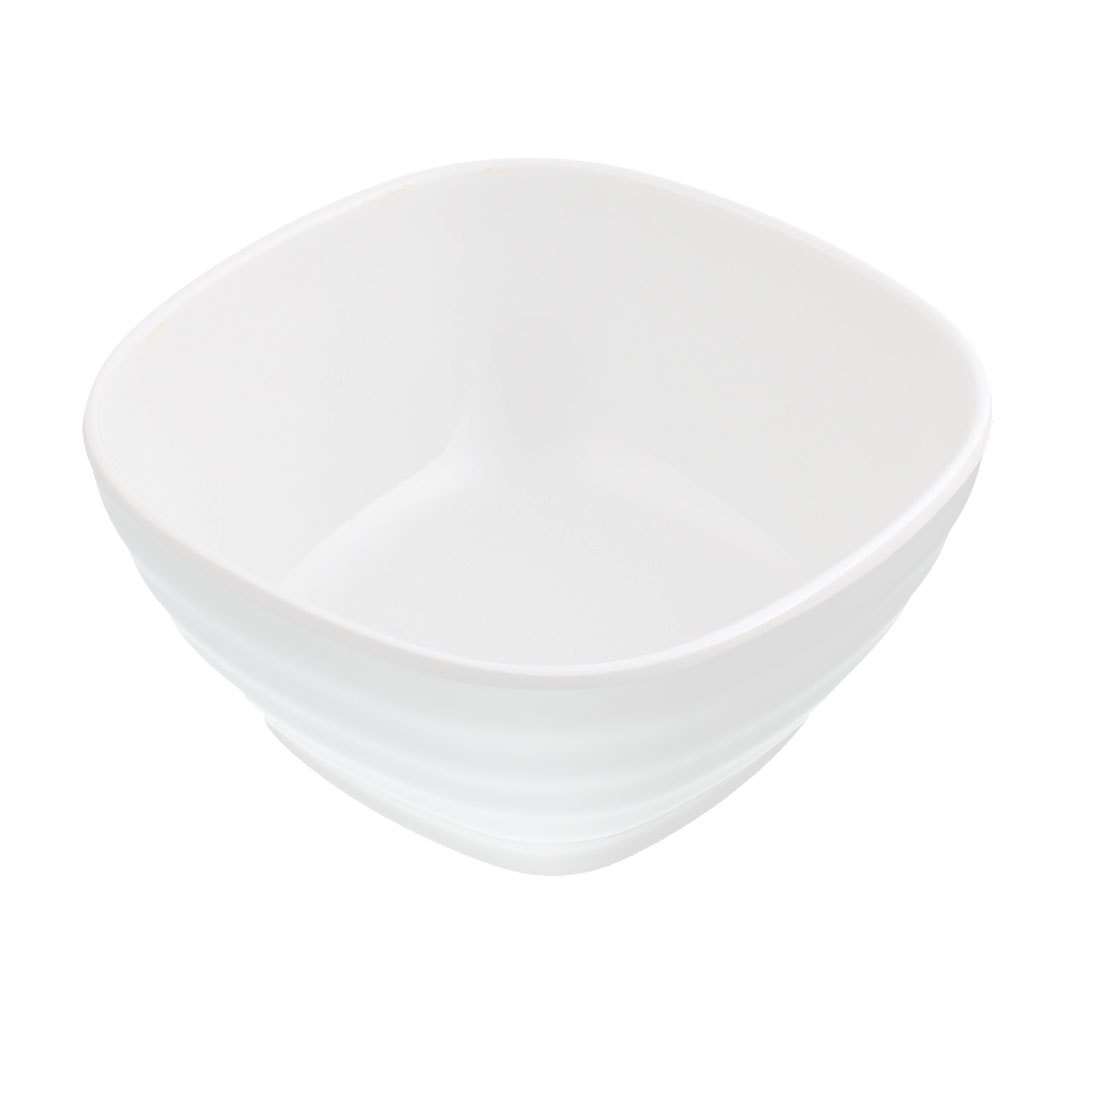 Plastic Square Shape Soup Cereal Fruits Rice Salad Bowl White